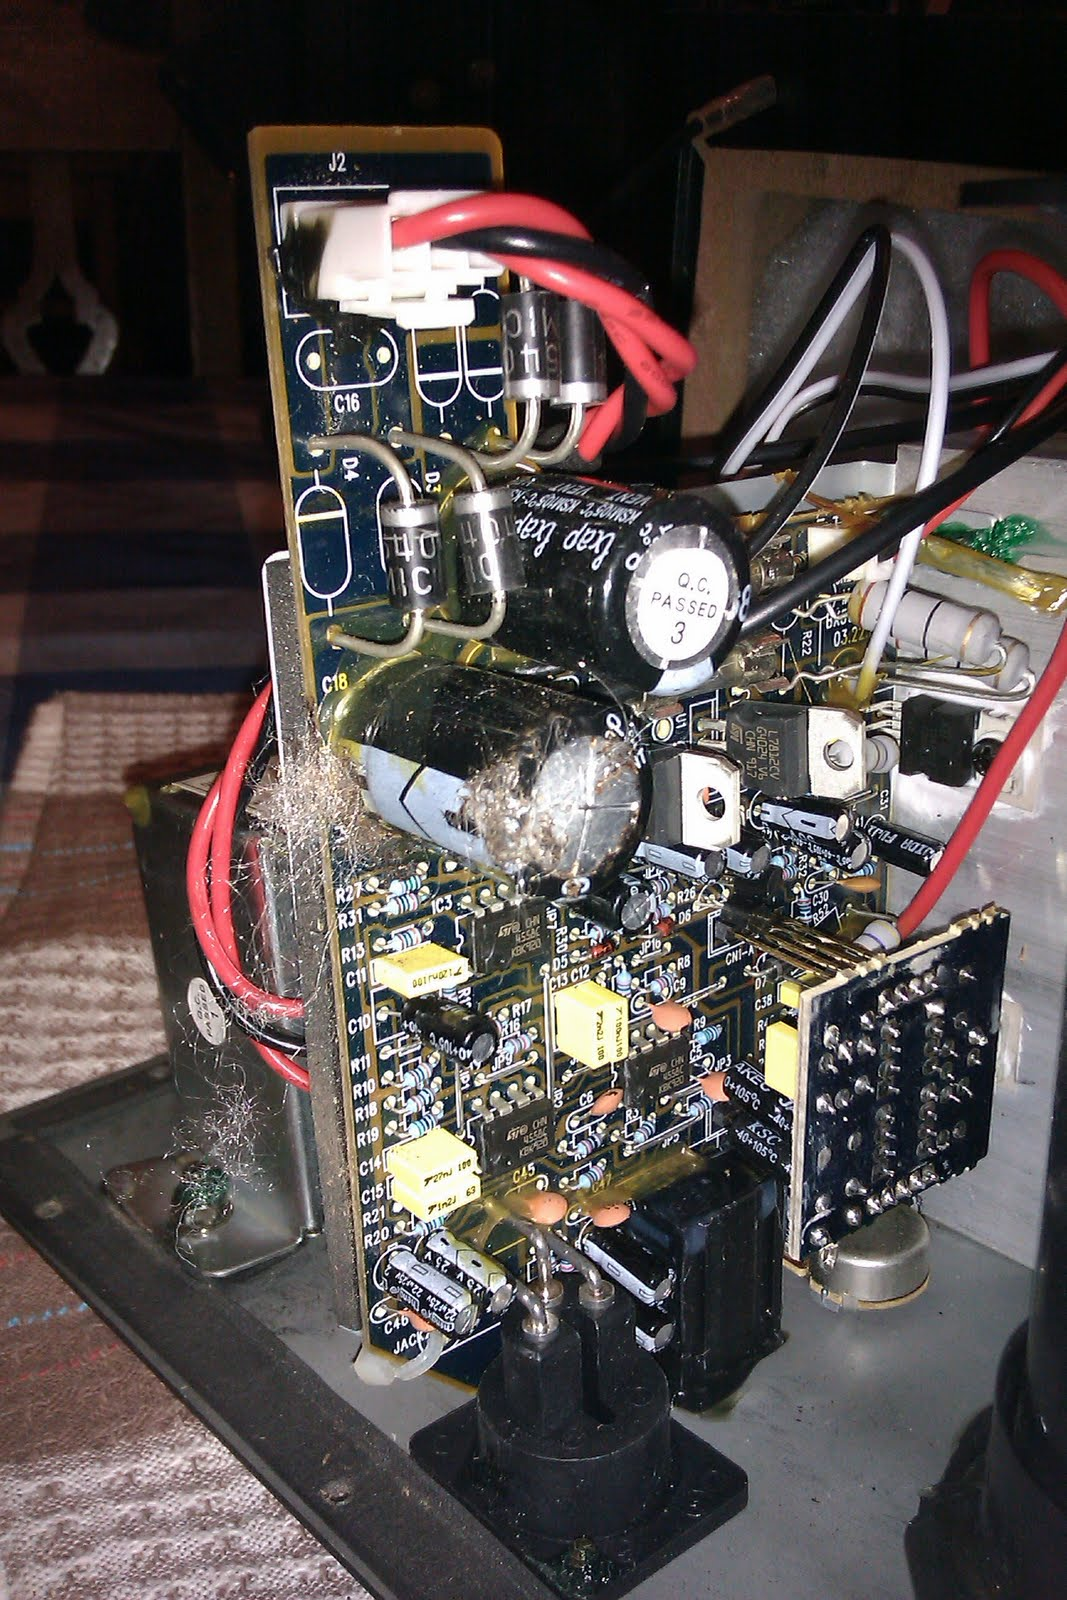 M Audio Bx5a Circuit Diagram - Wiring Diagram Section on